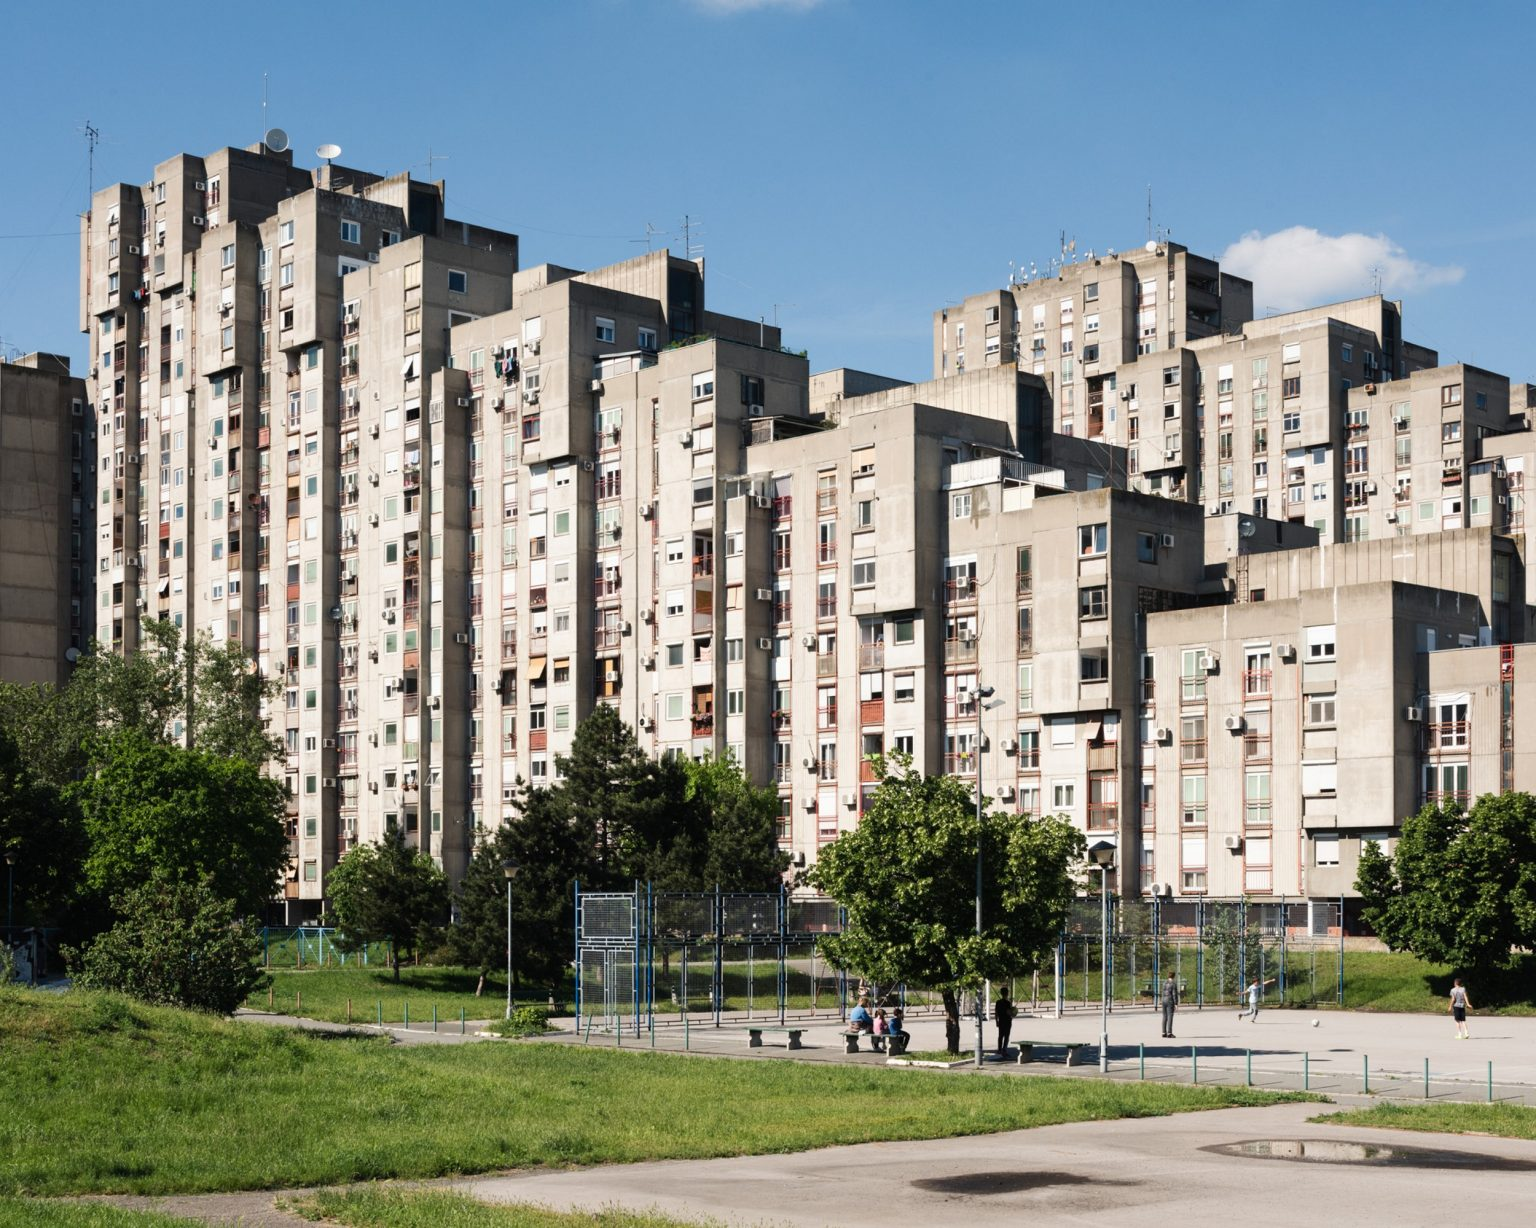 Belgrade, Serbia, May 2021.  Apartment blocks in Juri Gagarin street, Novi Beograd neighbourhood.  The former Bosnian Serb leader Radovan Karadzic lived in this area during his years as a fugitive. There he adopted the identity of Dragan Dabic, a self-styled spiritual healer, and started to give lectures and work as a consultant for private health companies until he was arrested in July 2008. In 2019 he was sentenced to life imprisonment over his role in the mass killings of civilians in the conflict in Bosnia.